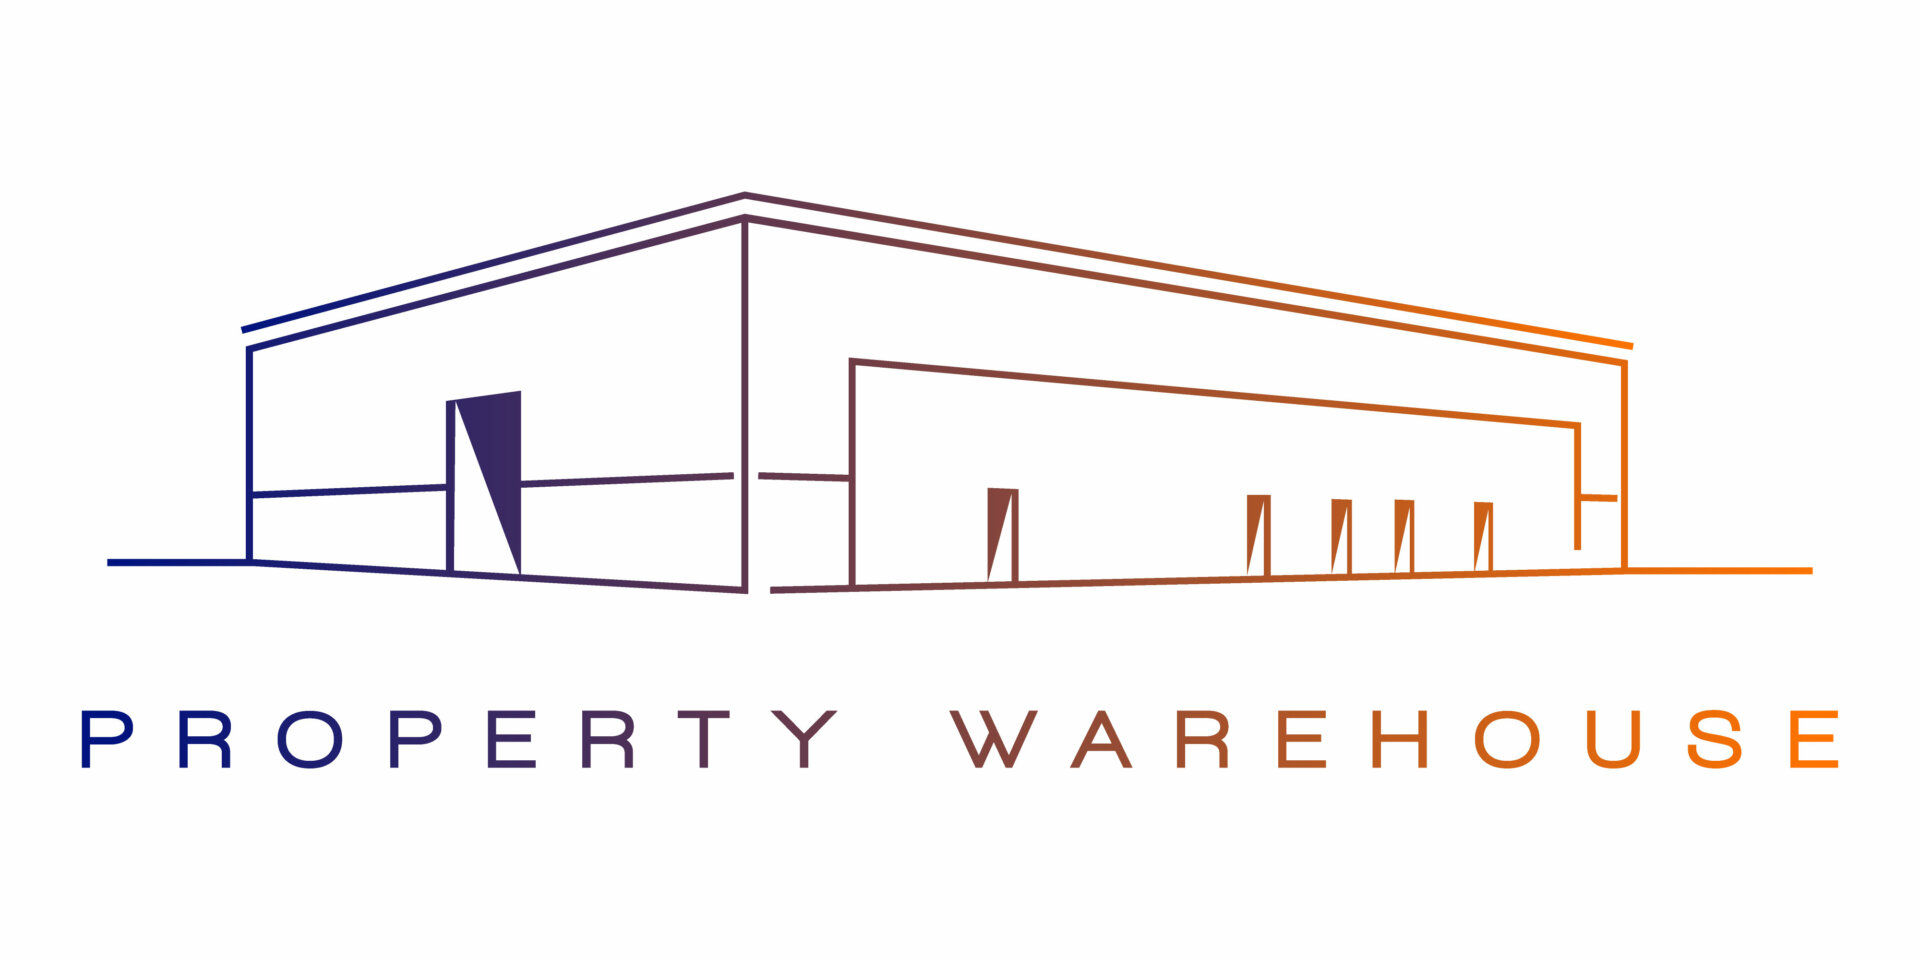 The Property Warehouse logo